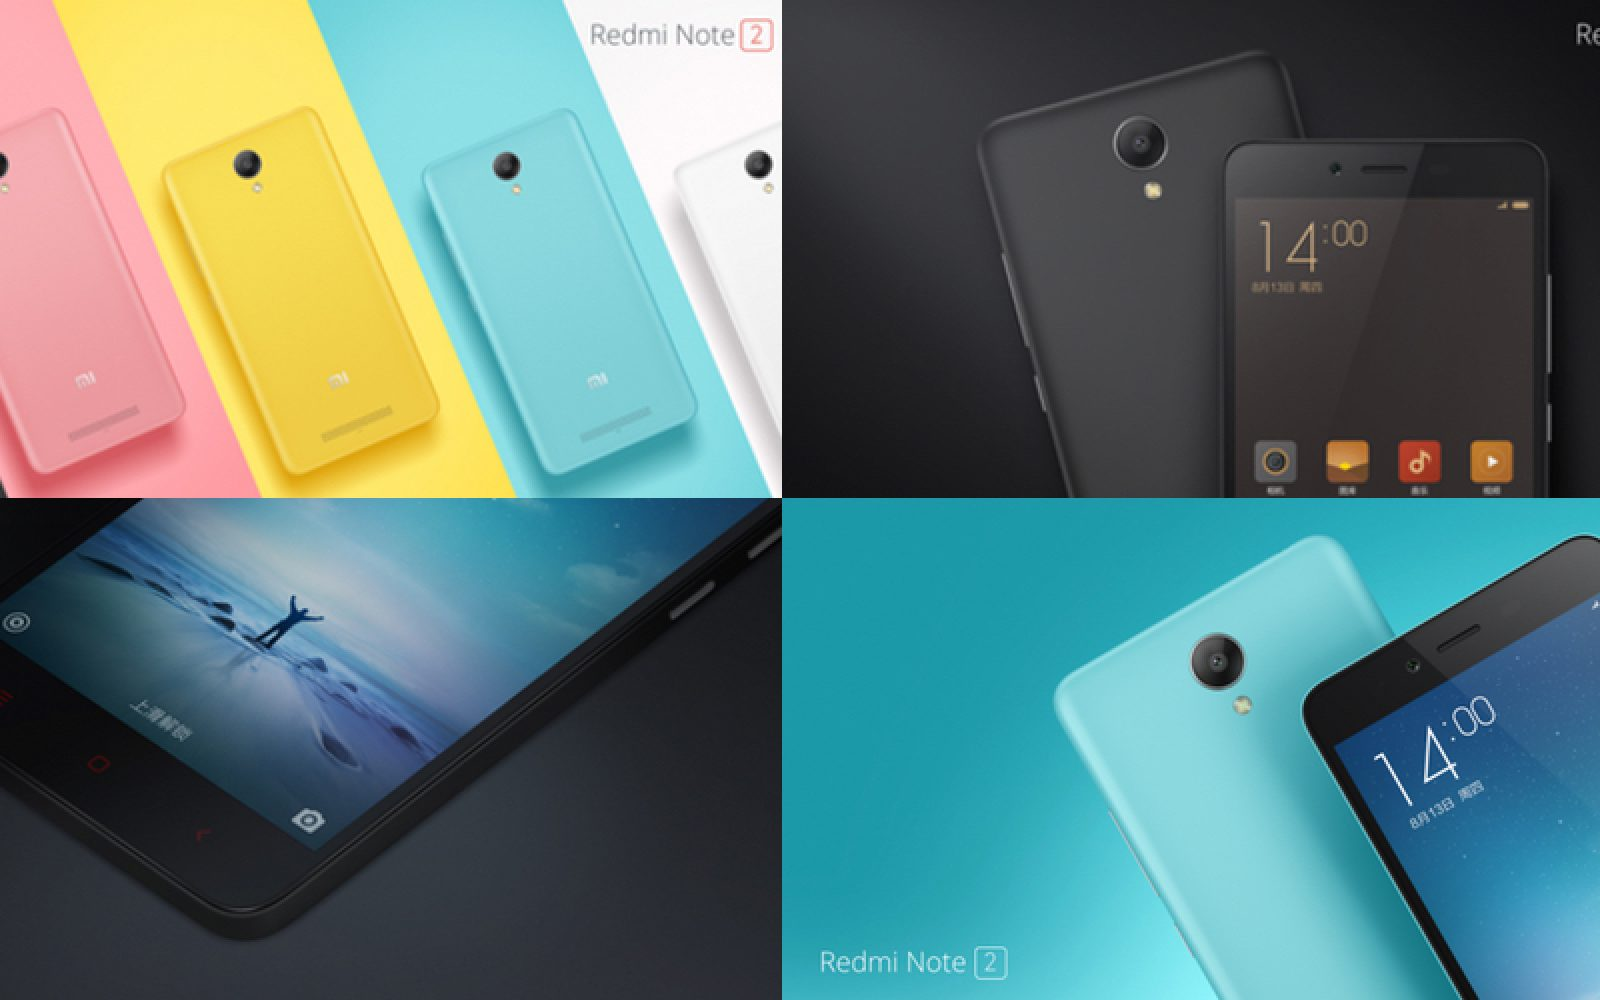 Xiaomi announces new flagship Redmi Note 2: Octa-core and full HD for $124